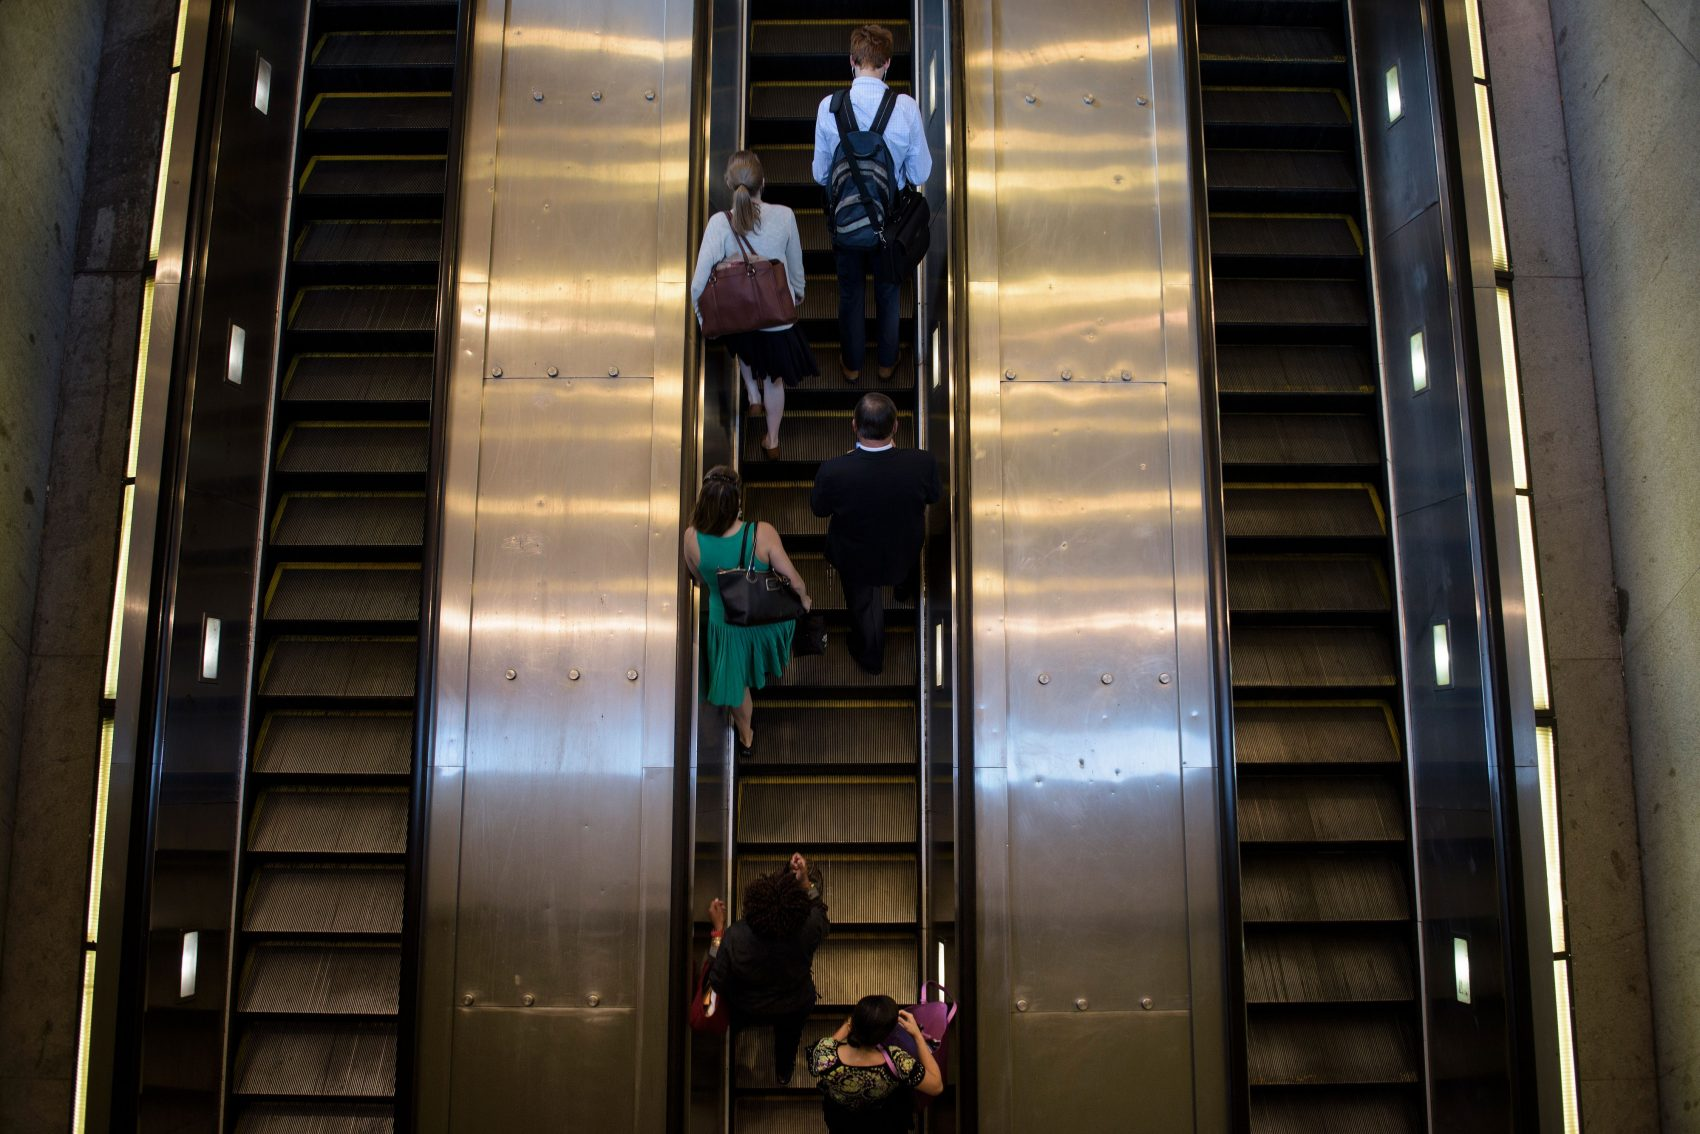 People ride an escalator to exit the Metro transit system in Washington, D.C. (Brendan Smialowski/AFP/Getty Images)